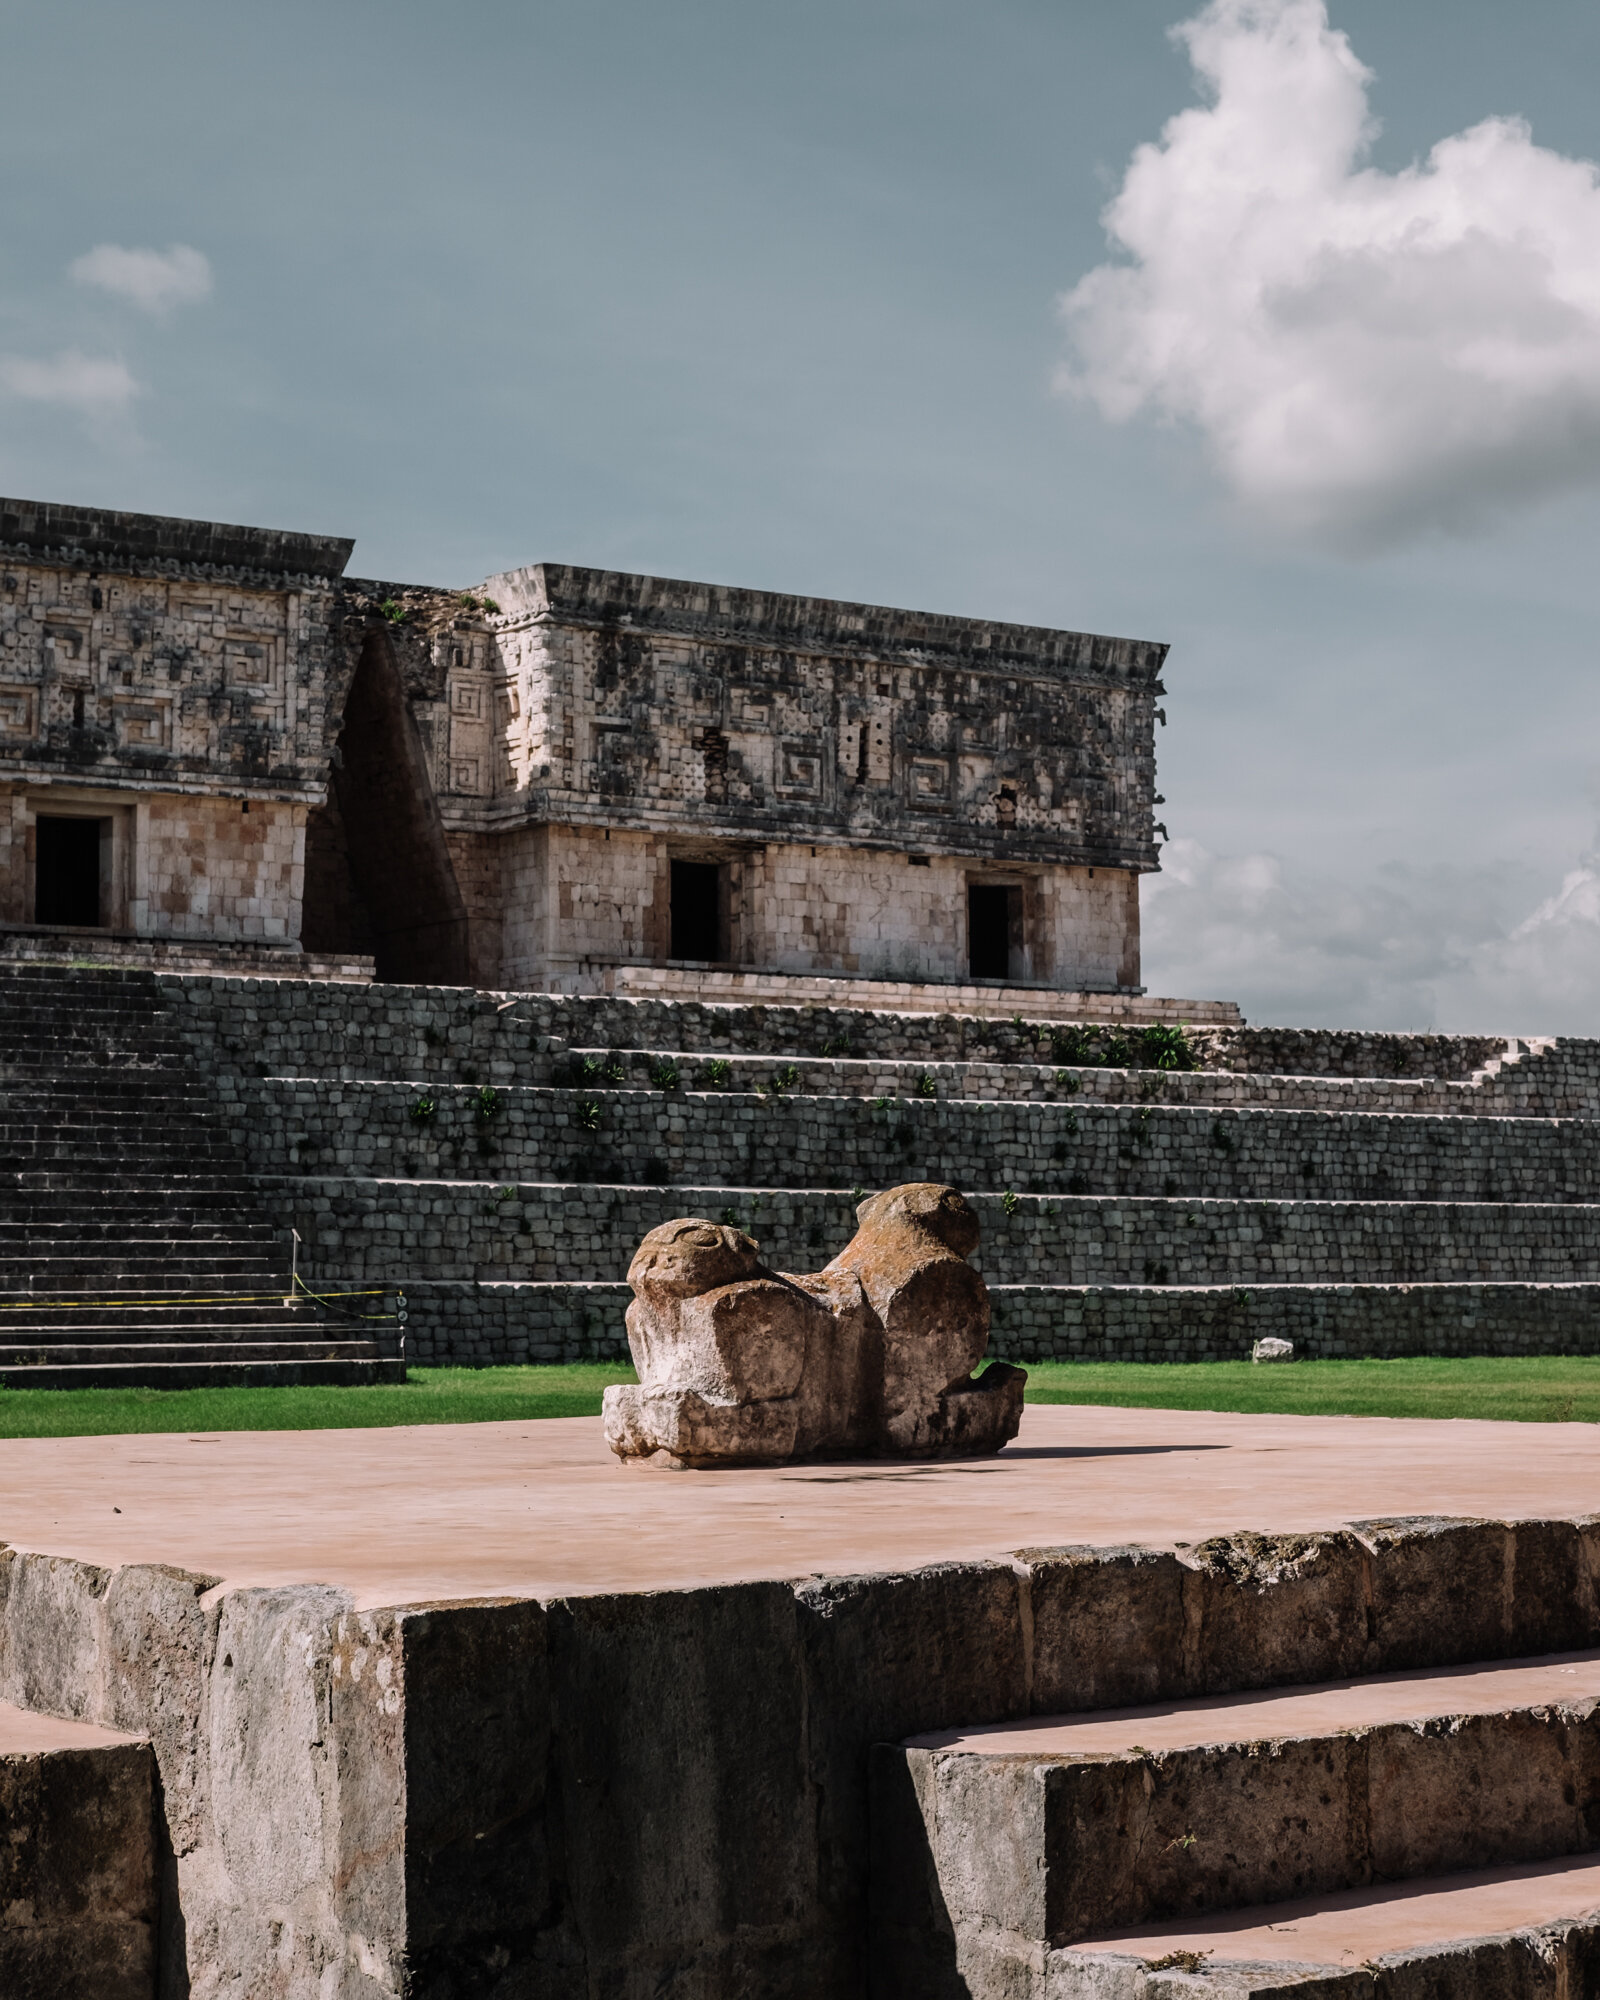 Rachel Off Duty: The Ancient Ruins at Uxmal, Mexico